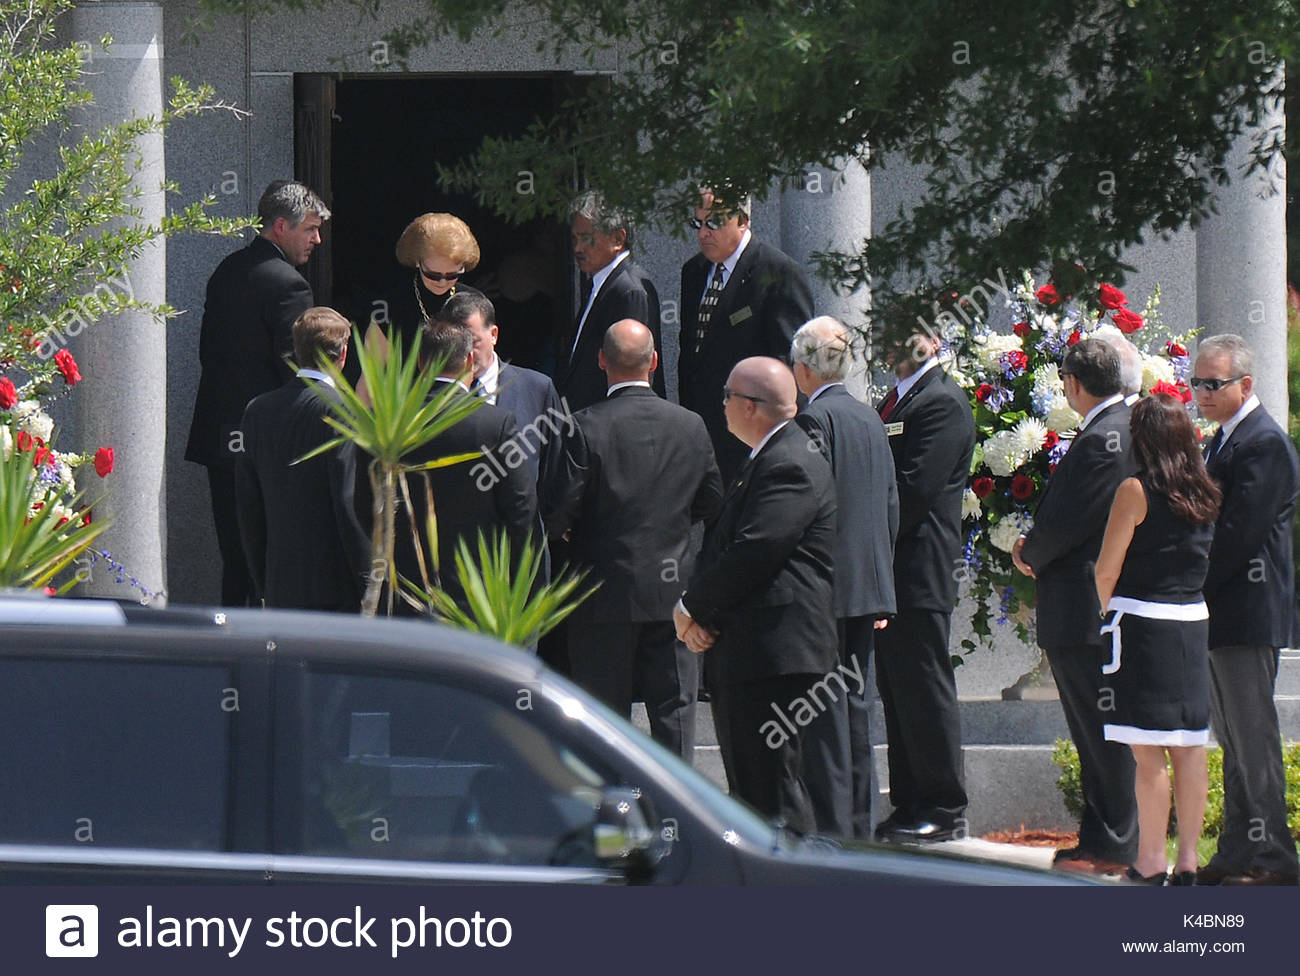 George M Steinbrenner III Is Laid To Rest At Trinity Memorial Gardens